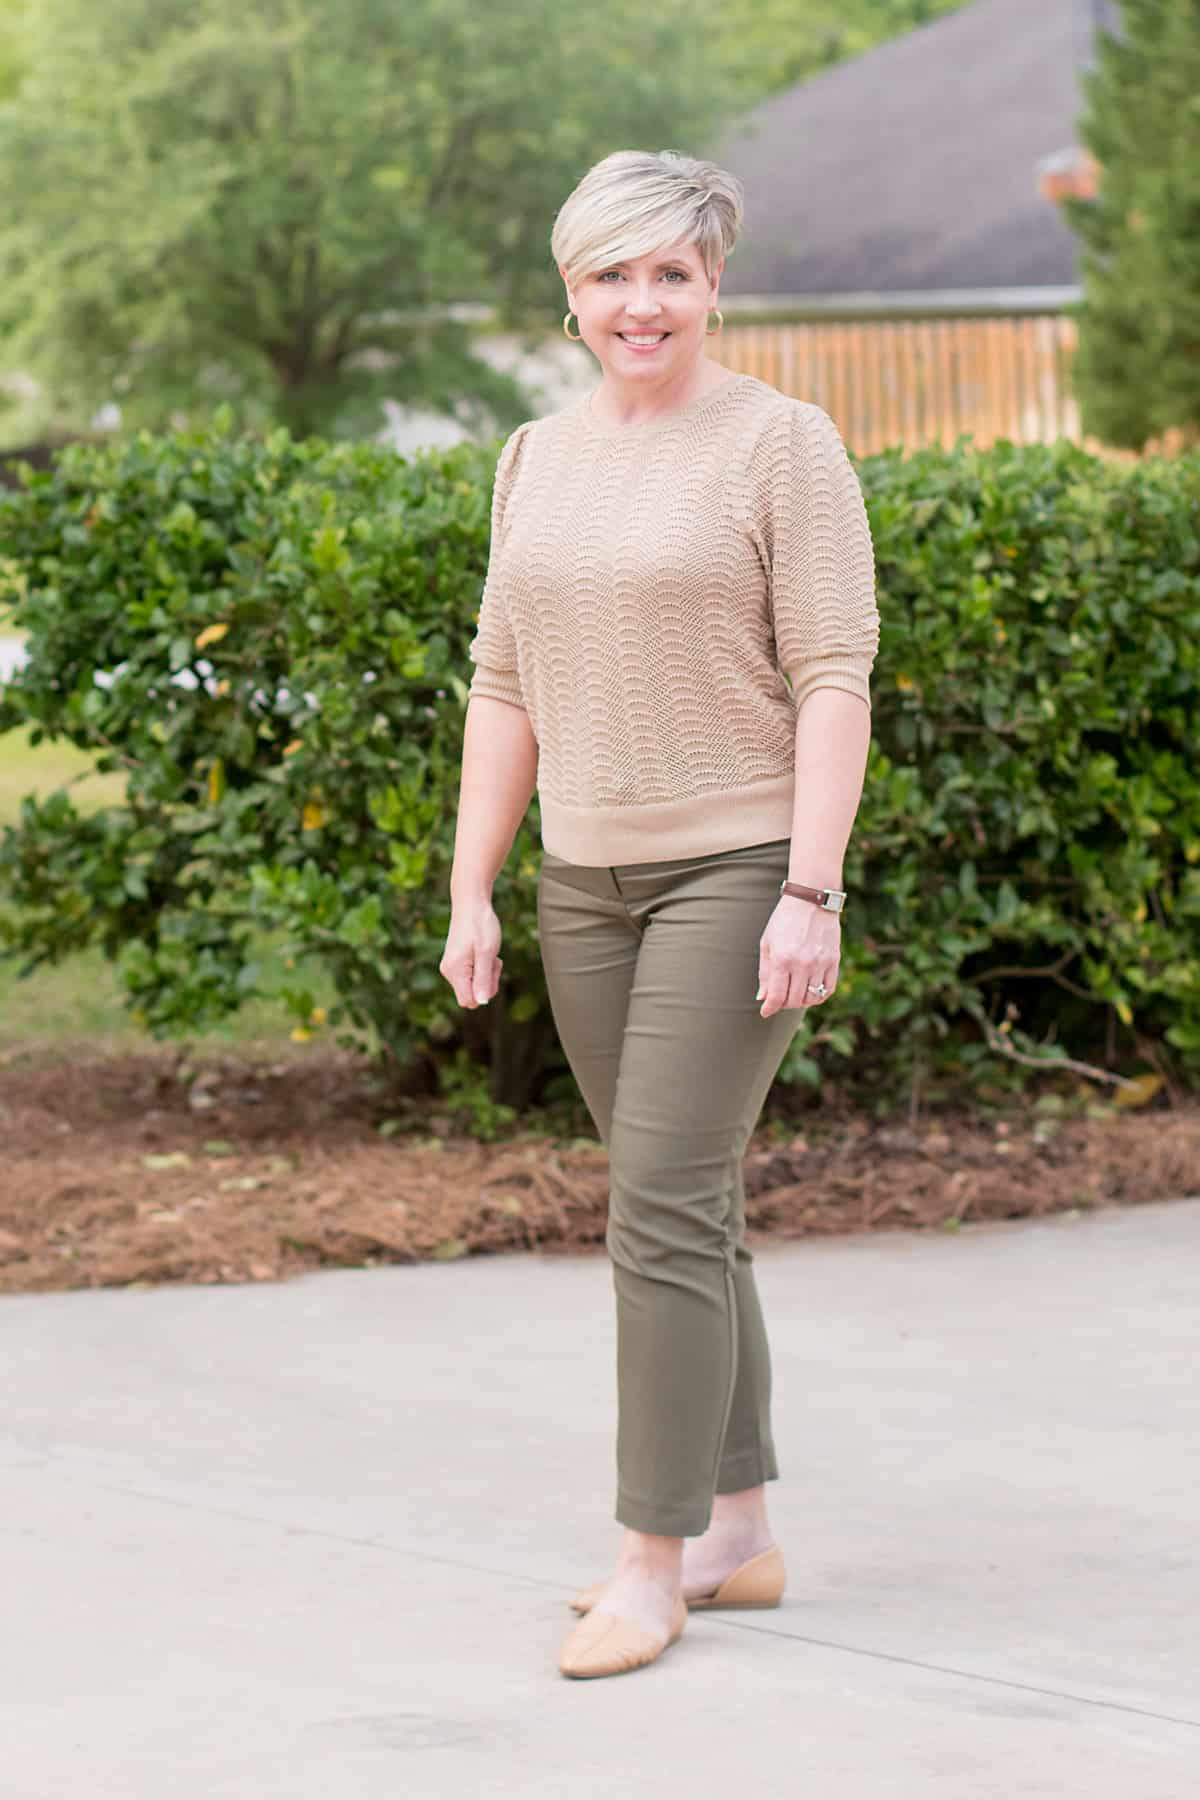 women's spring work wear essentials textured Loft sweater and olive pants